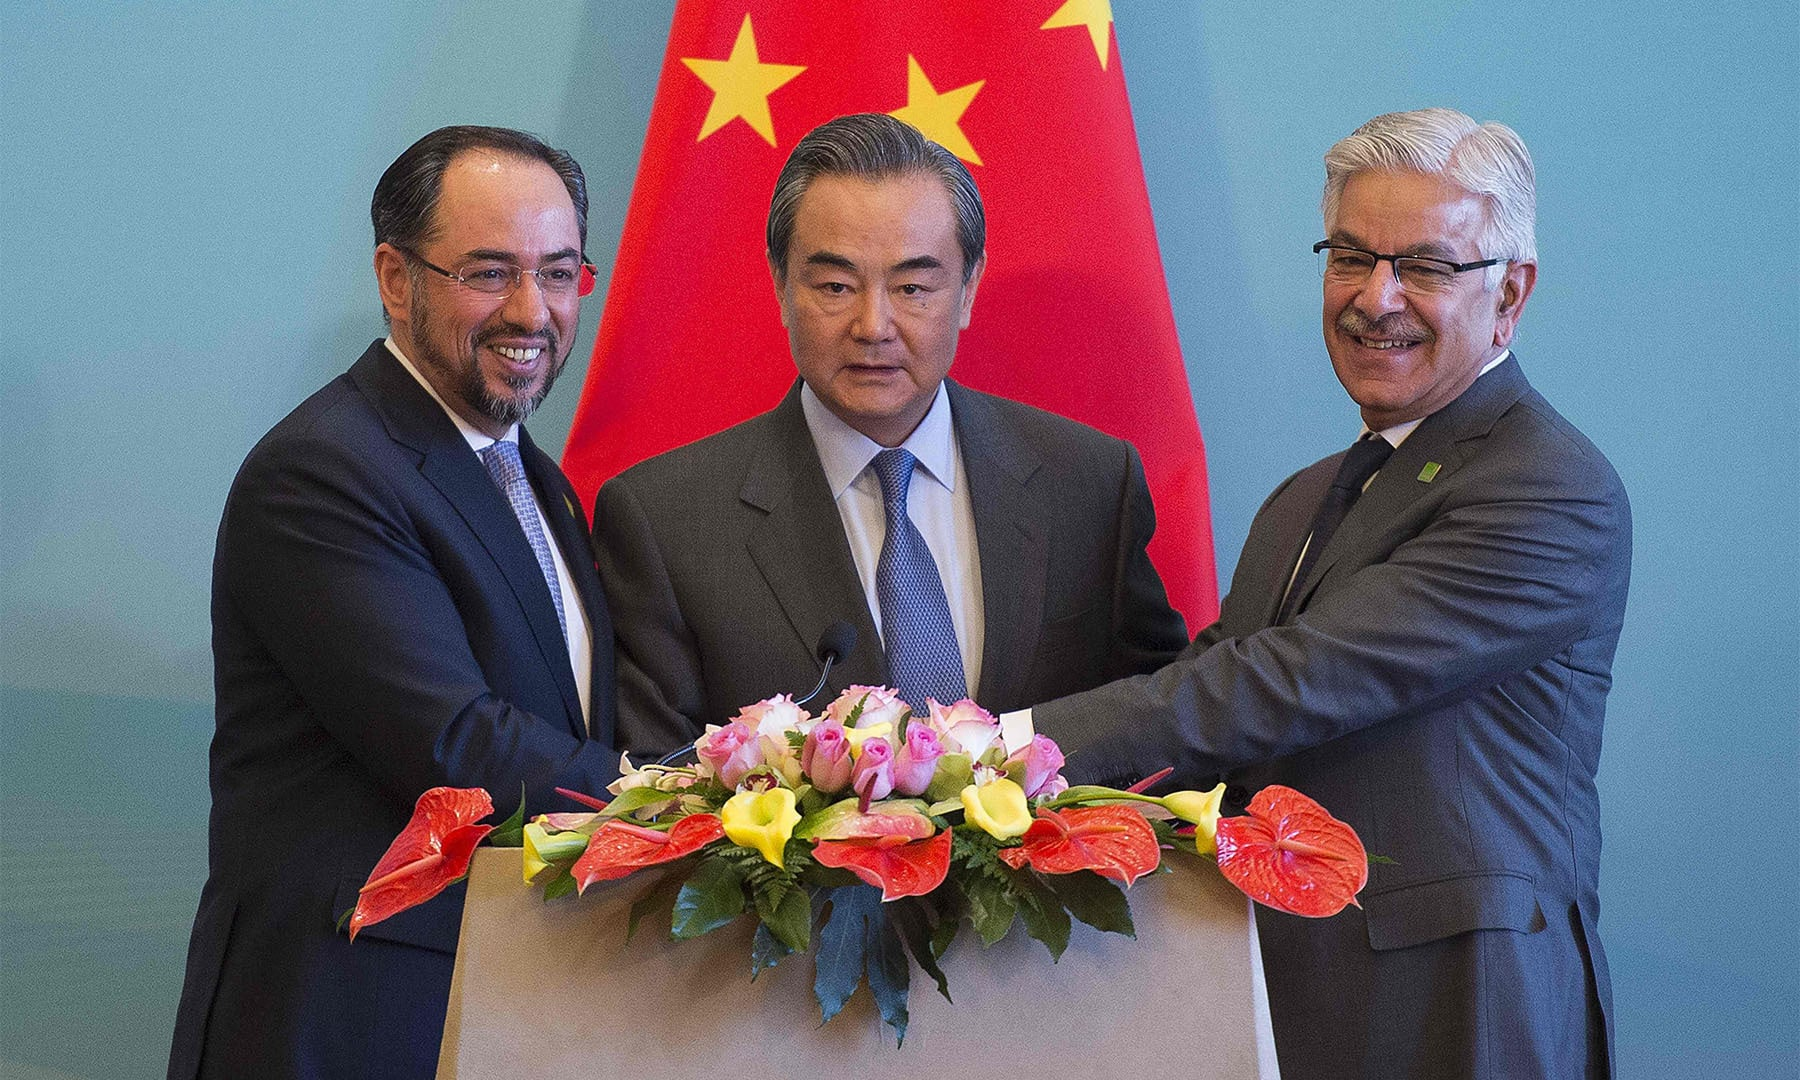 China's Foreign Minister Wang Yi (C), Afghanistan's Foreign Minister Salahuddin Rabbani (L) and Pakistan's Foreign Minister Khawaja Muhammad Asif (R) join hands at the end of a joint press conference after the first China-Afghanistan-Pakistan Foreign Ministers' Dialogue in Beijing on Tuesday.— AFP